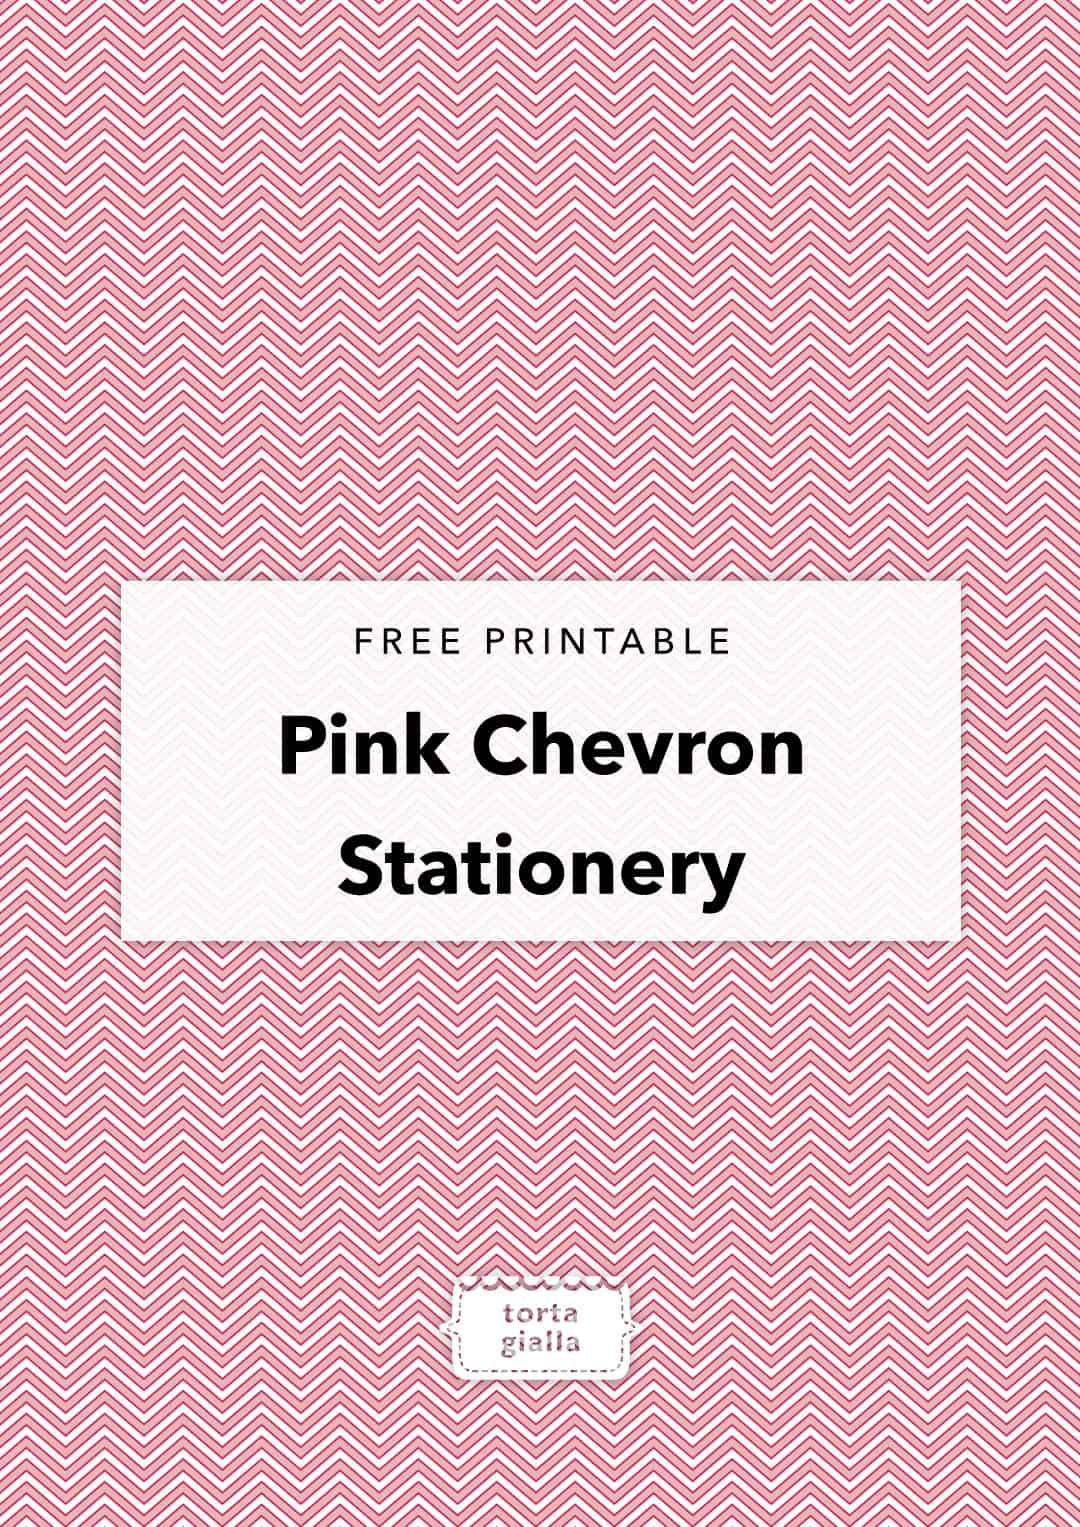 free printable pink chevron stationery